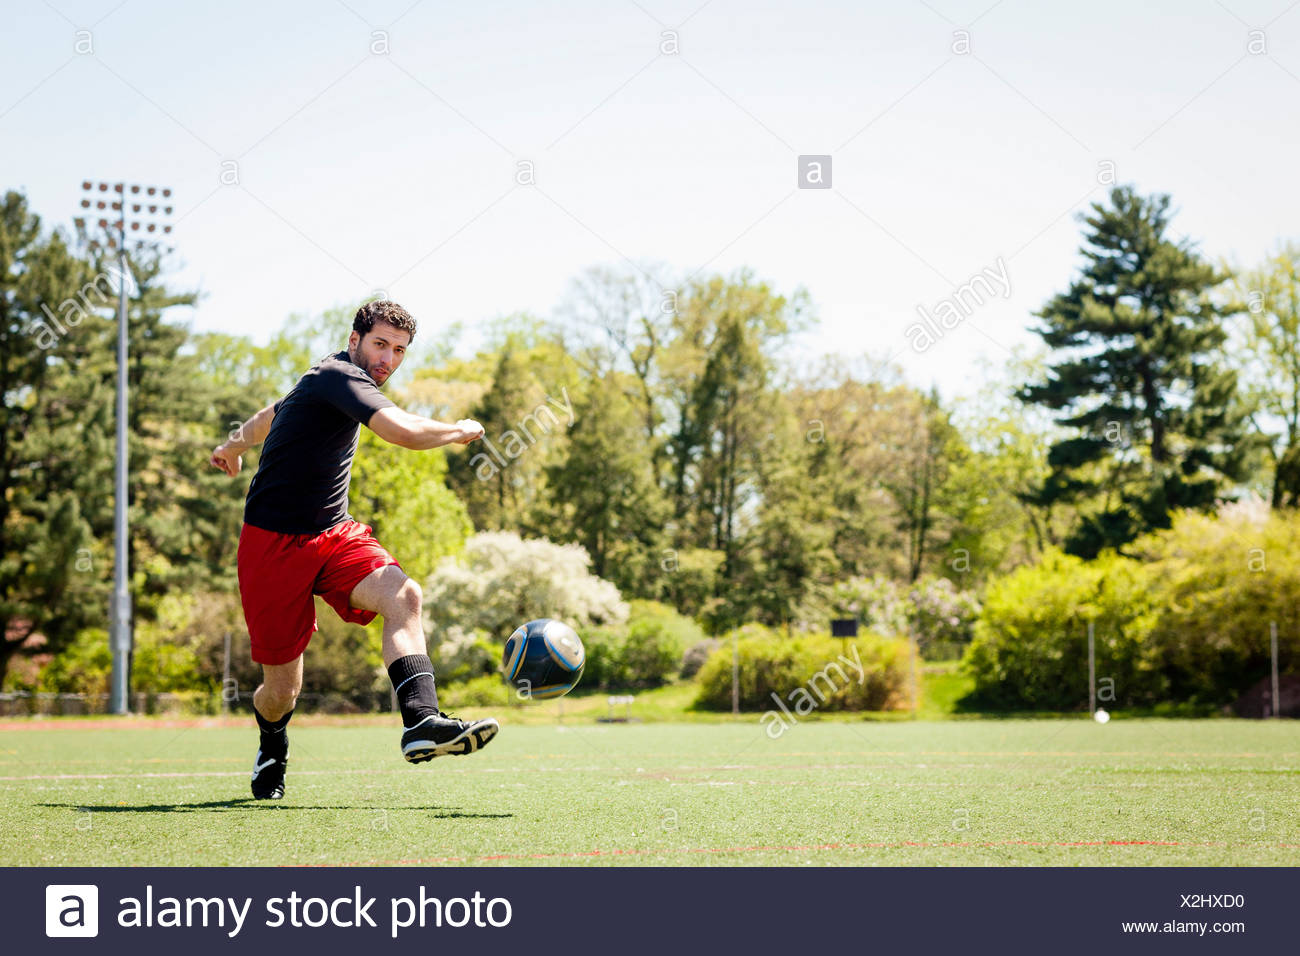 Soccer player running and kicking ball - Stock Image